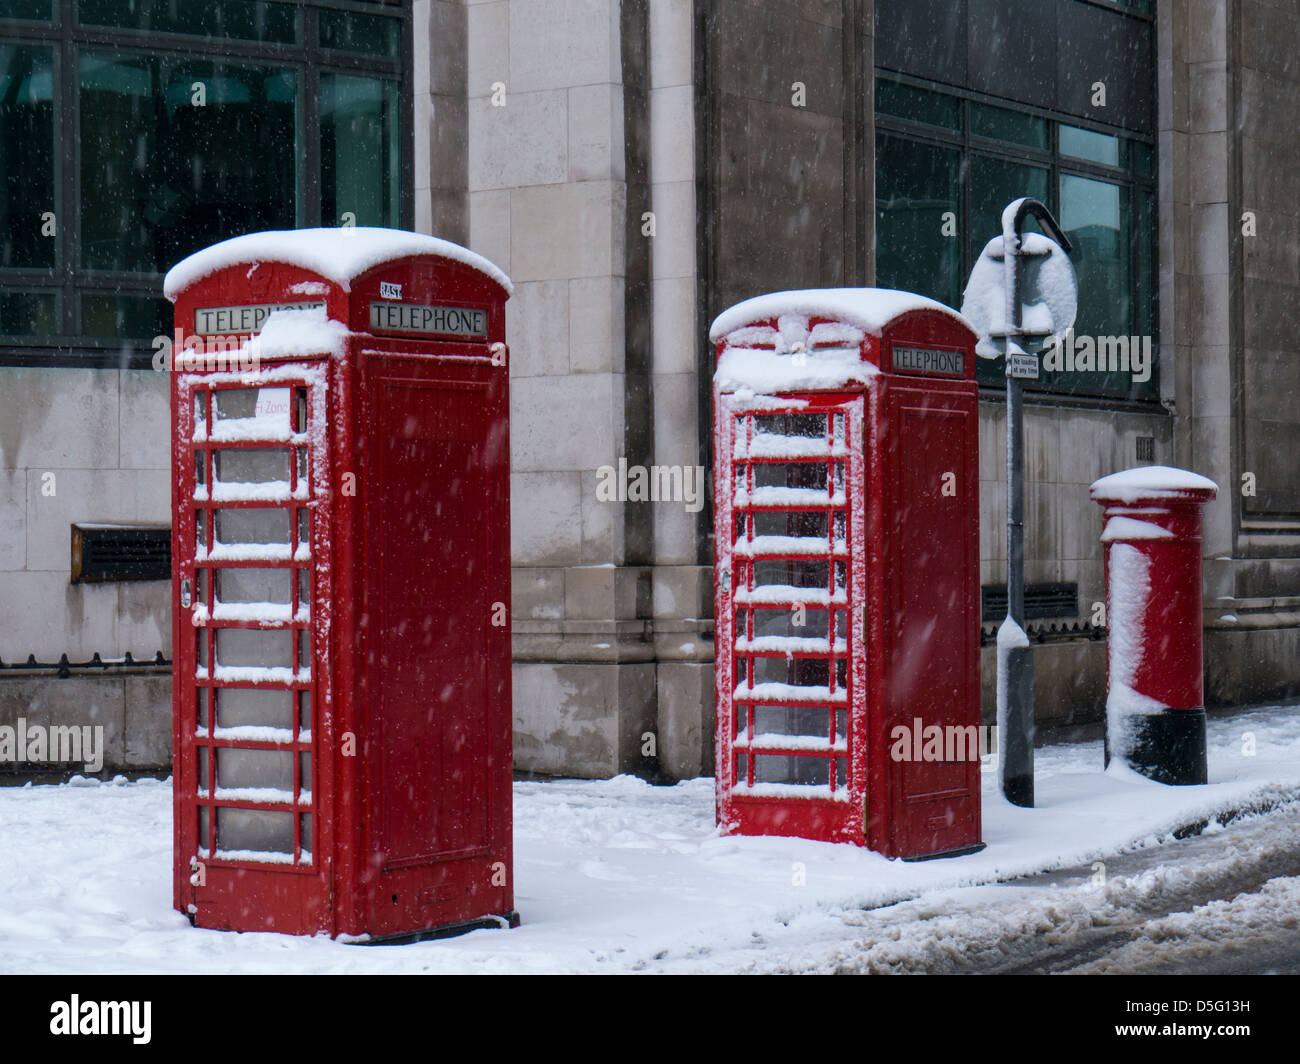 Telephone Kiosks and Post Box in the Snow, Sheffield. - Stock Image